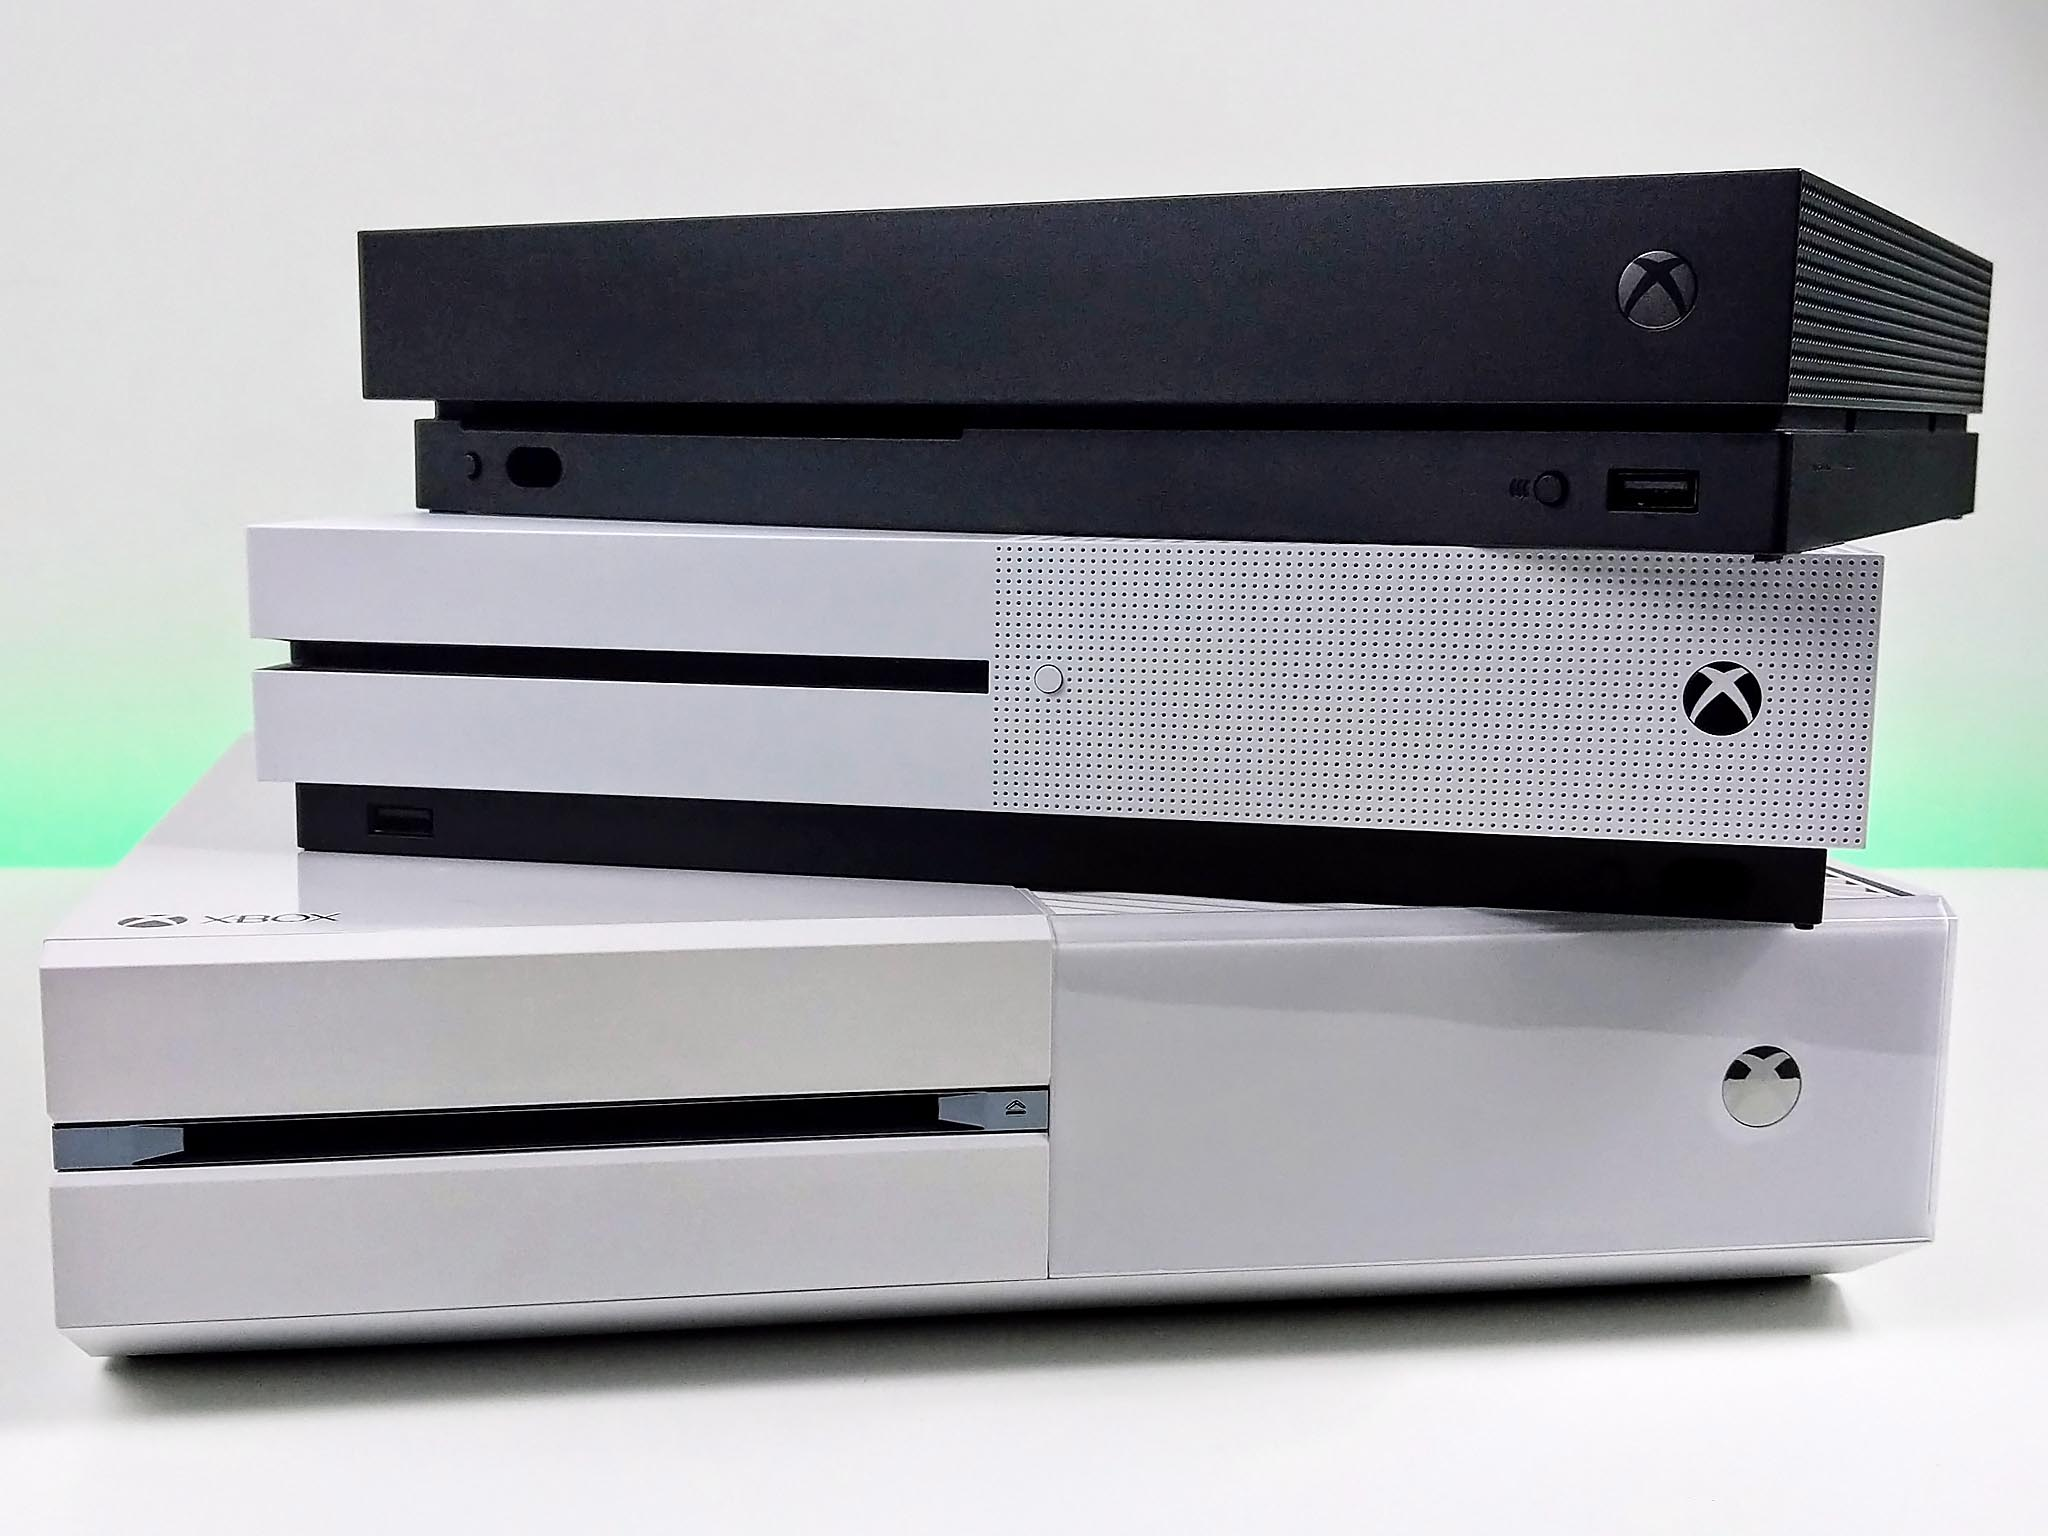 hight resolution of microsoft has sold three revisions of the xbox one over its four years on the market each major revision of the console has delivered various visual